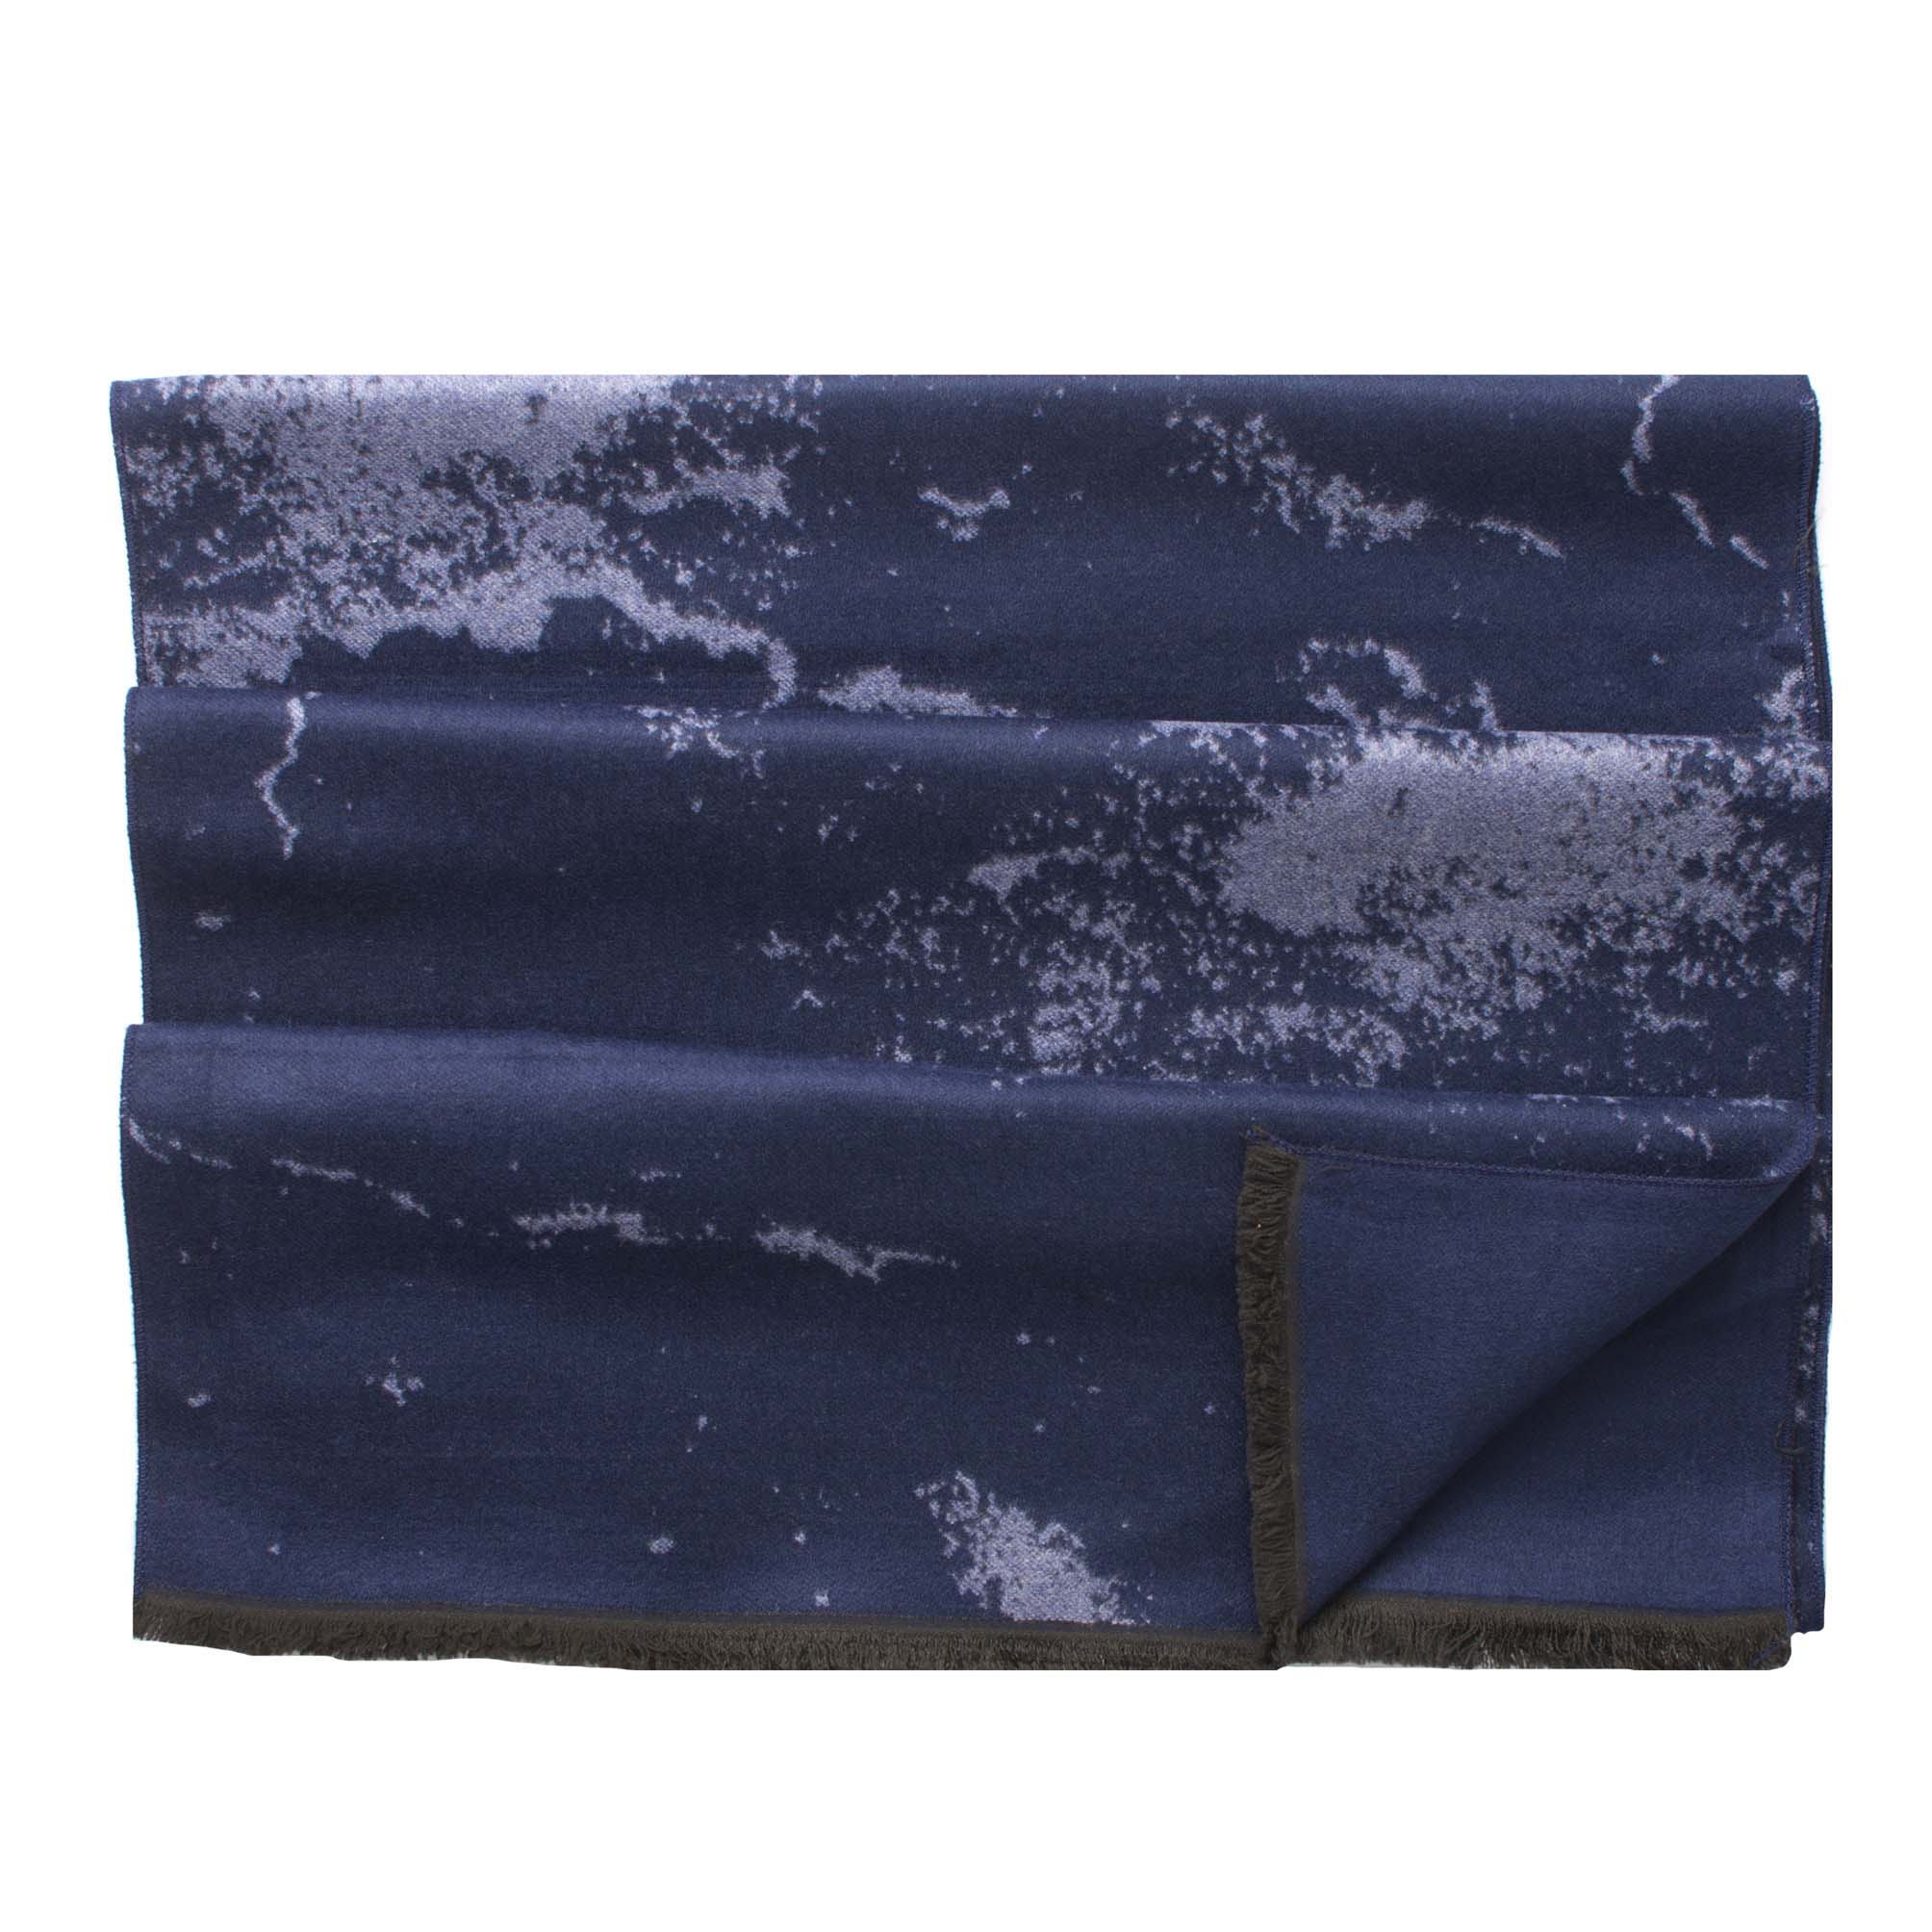 Scarf viscose double face, marble design